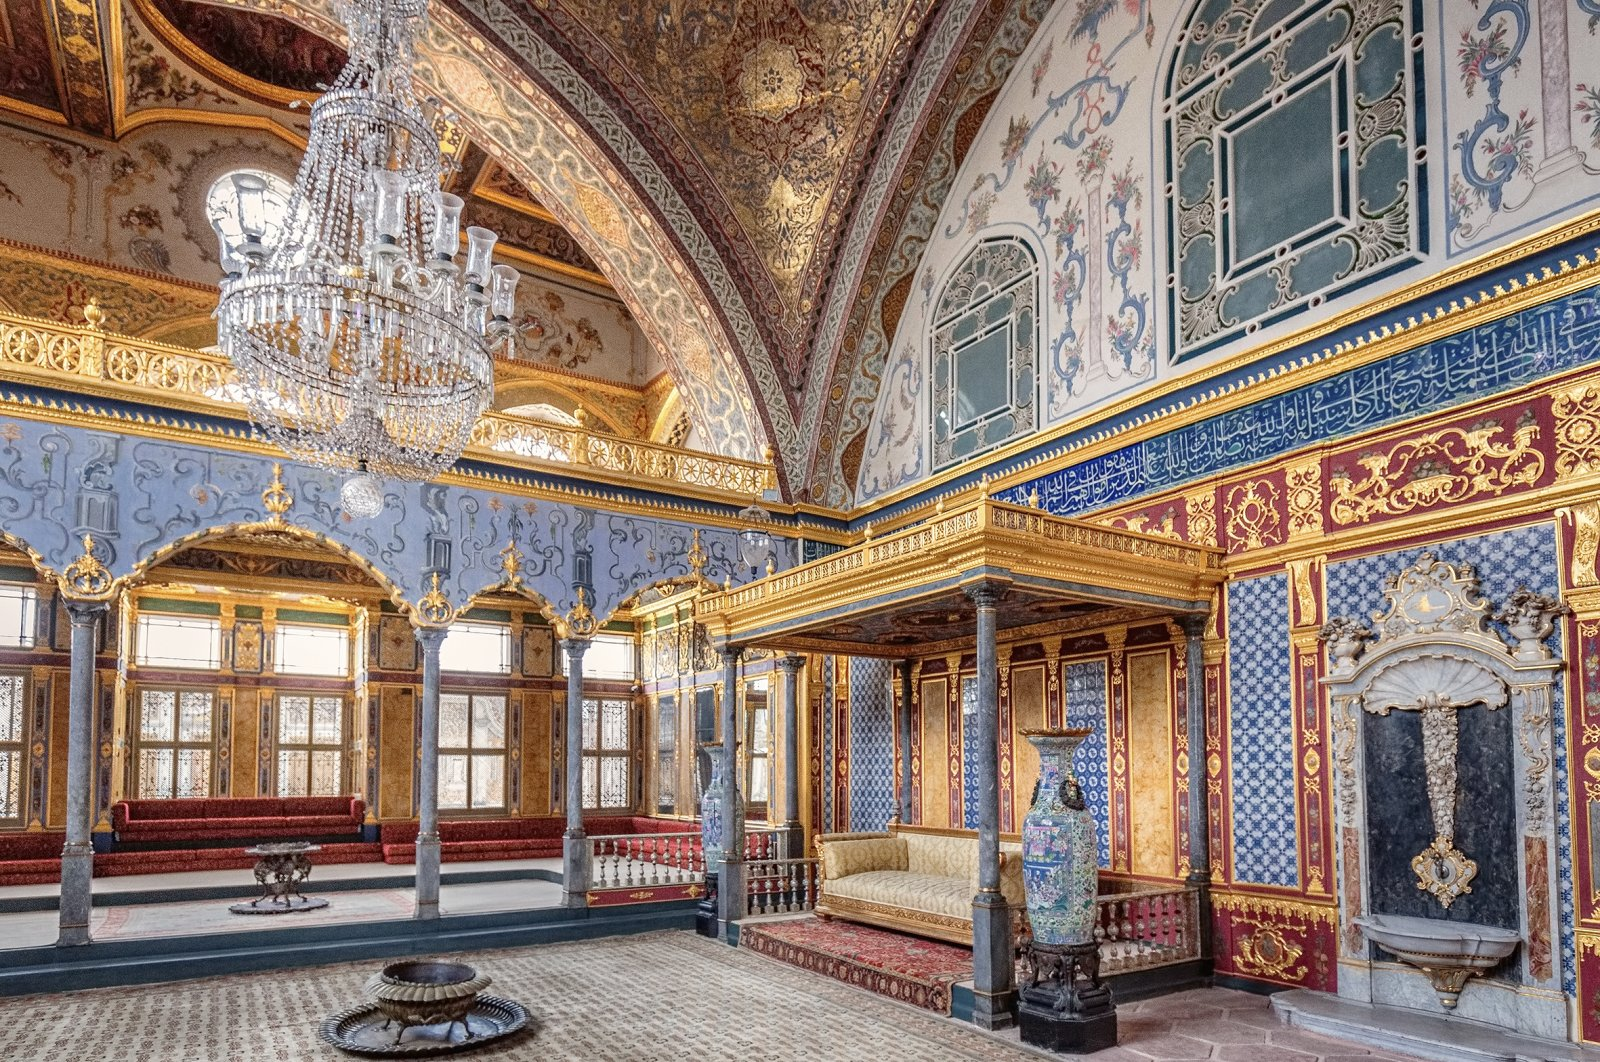 Topkapı Palace is one of the museums to be visited with Museum Pass. (Ruslan Kaln / iStock Photo)